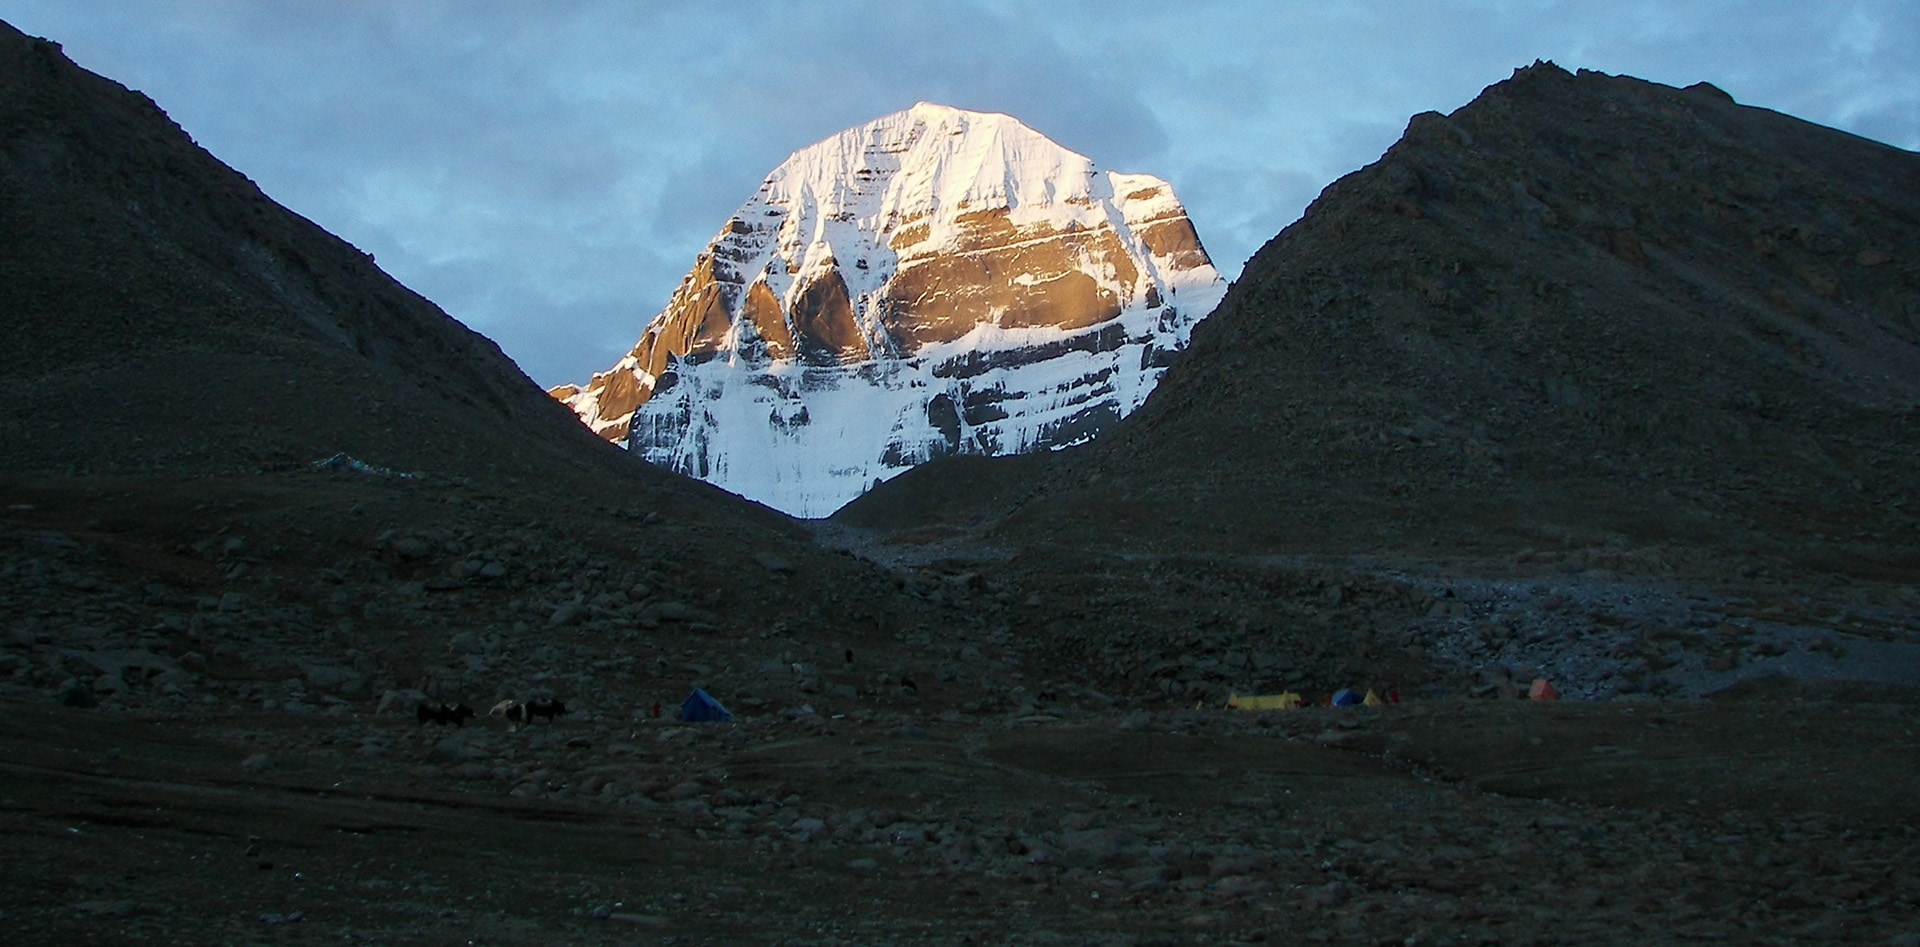 Tibet Trekking around Kailash with Everest BC and Tsada